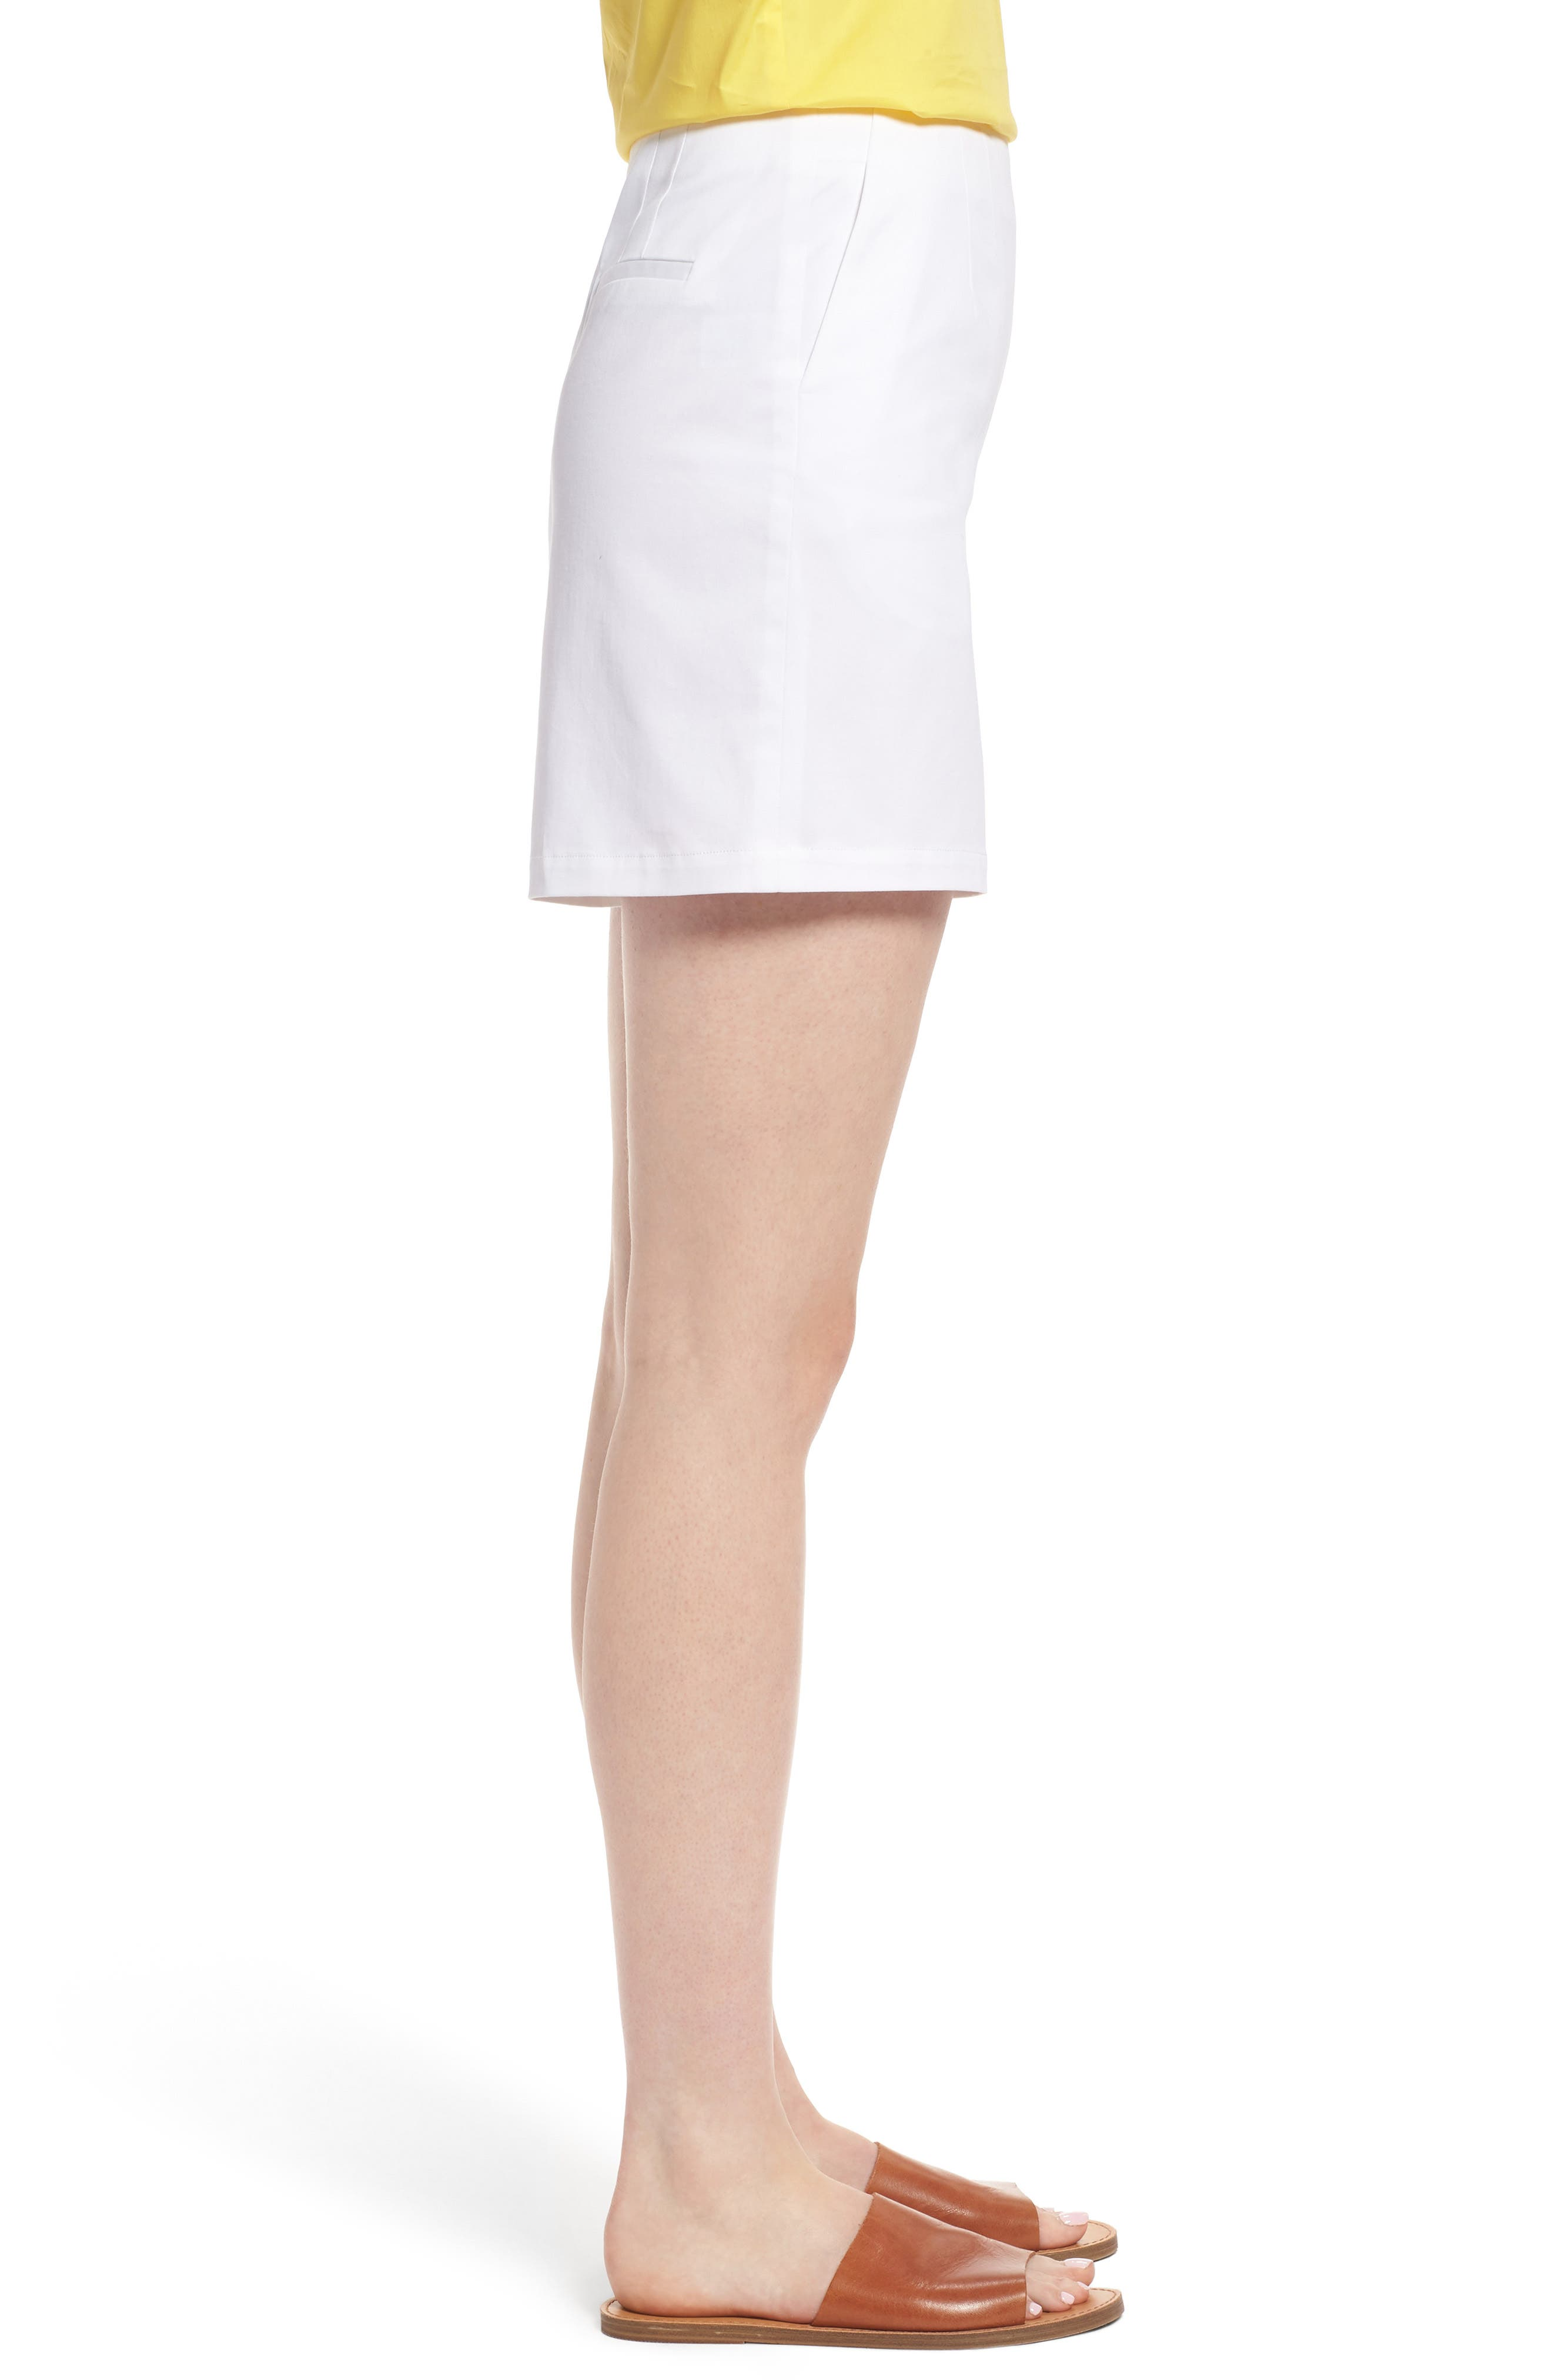 Clean Twill Shorts,                             Alternate thumbnail 5, color,                             White